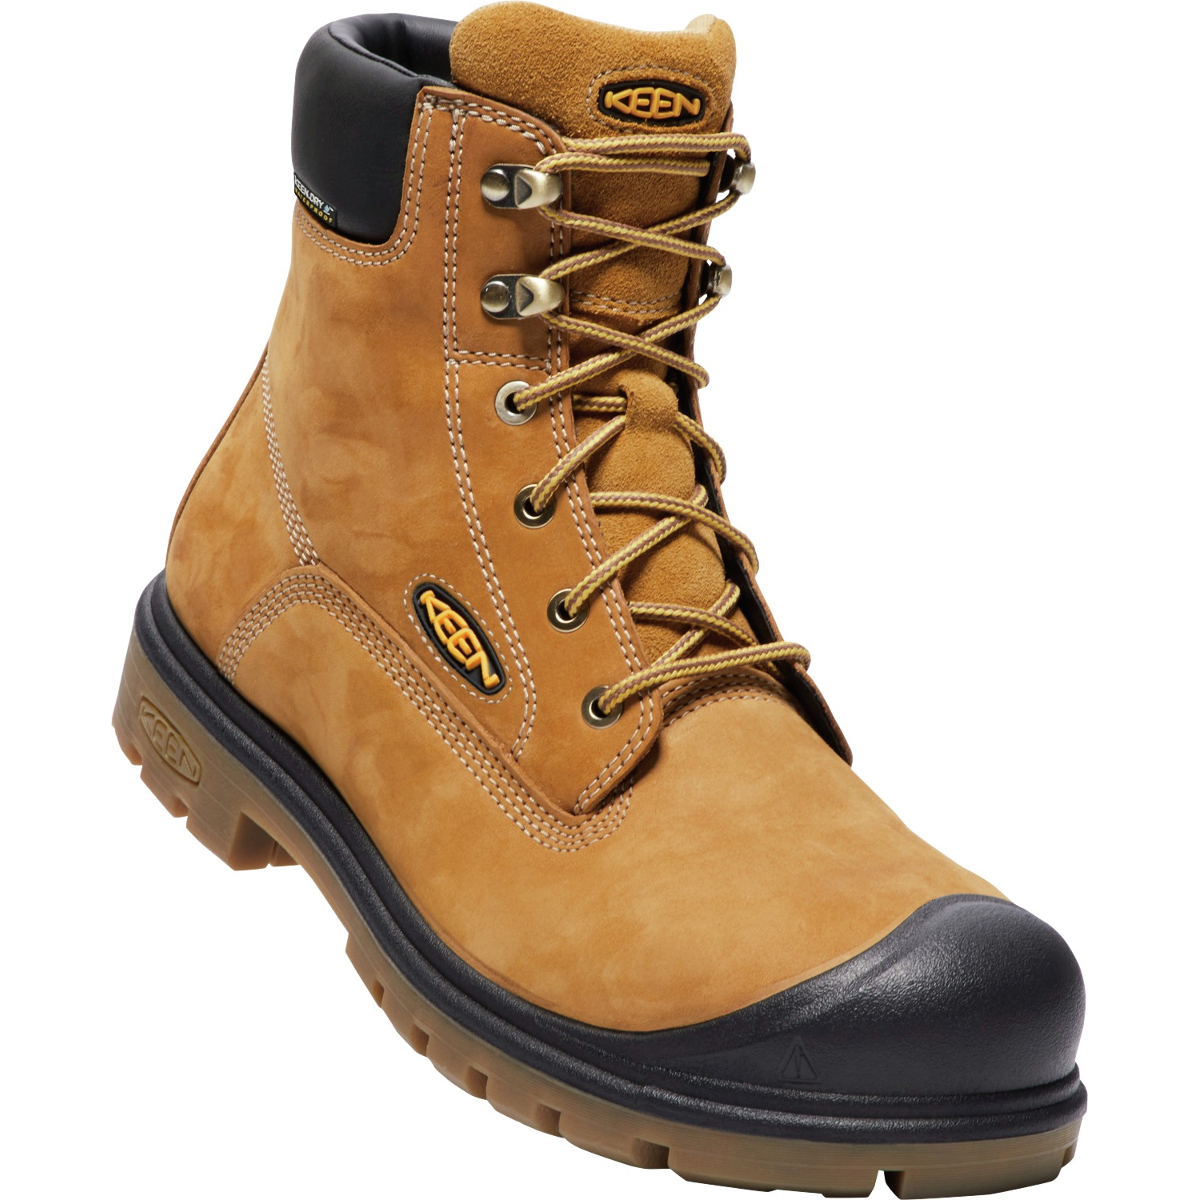 "Keen Men's Baltimore 6"" Waterproof Soft Toe Boot - Brown, 10.5"